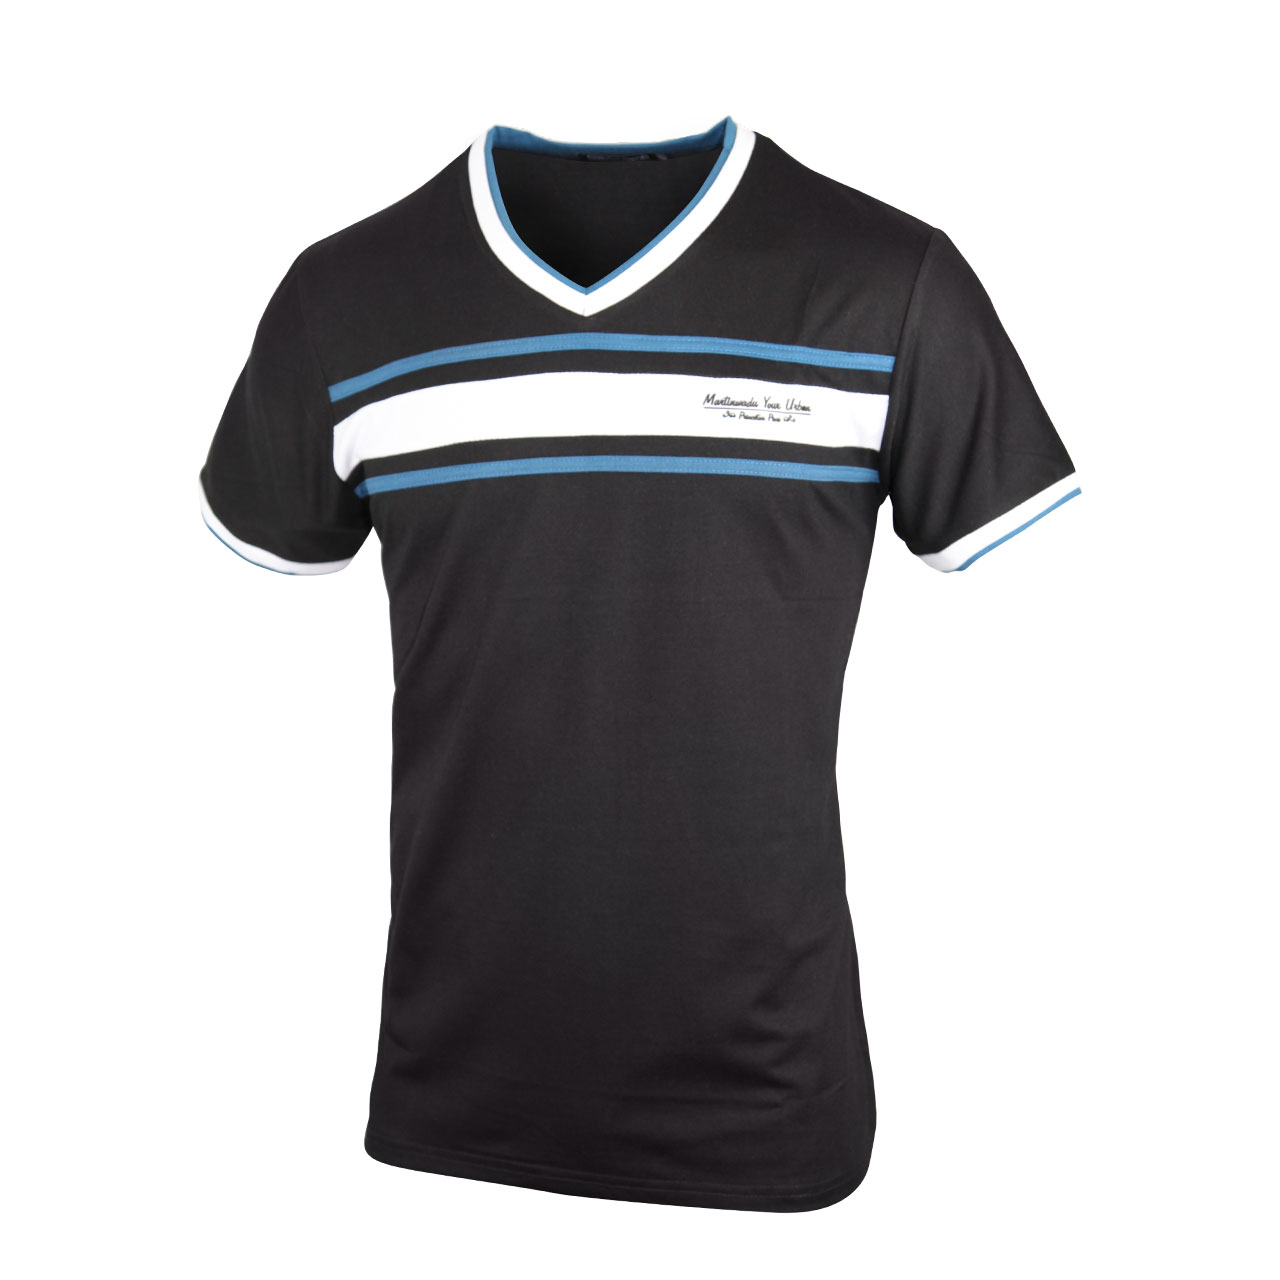 Crew Neck V Shaped T Shirt For Men - Black/Ash/Blue